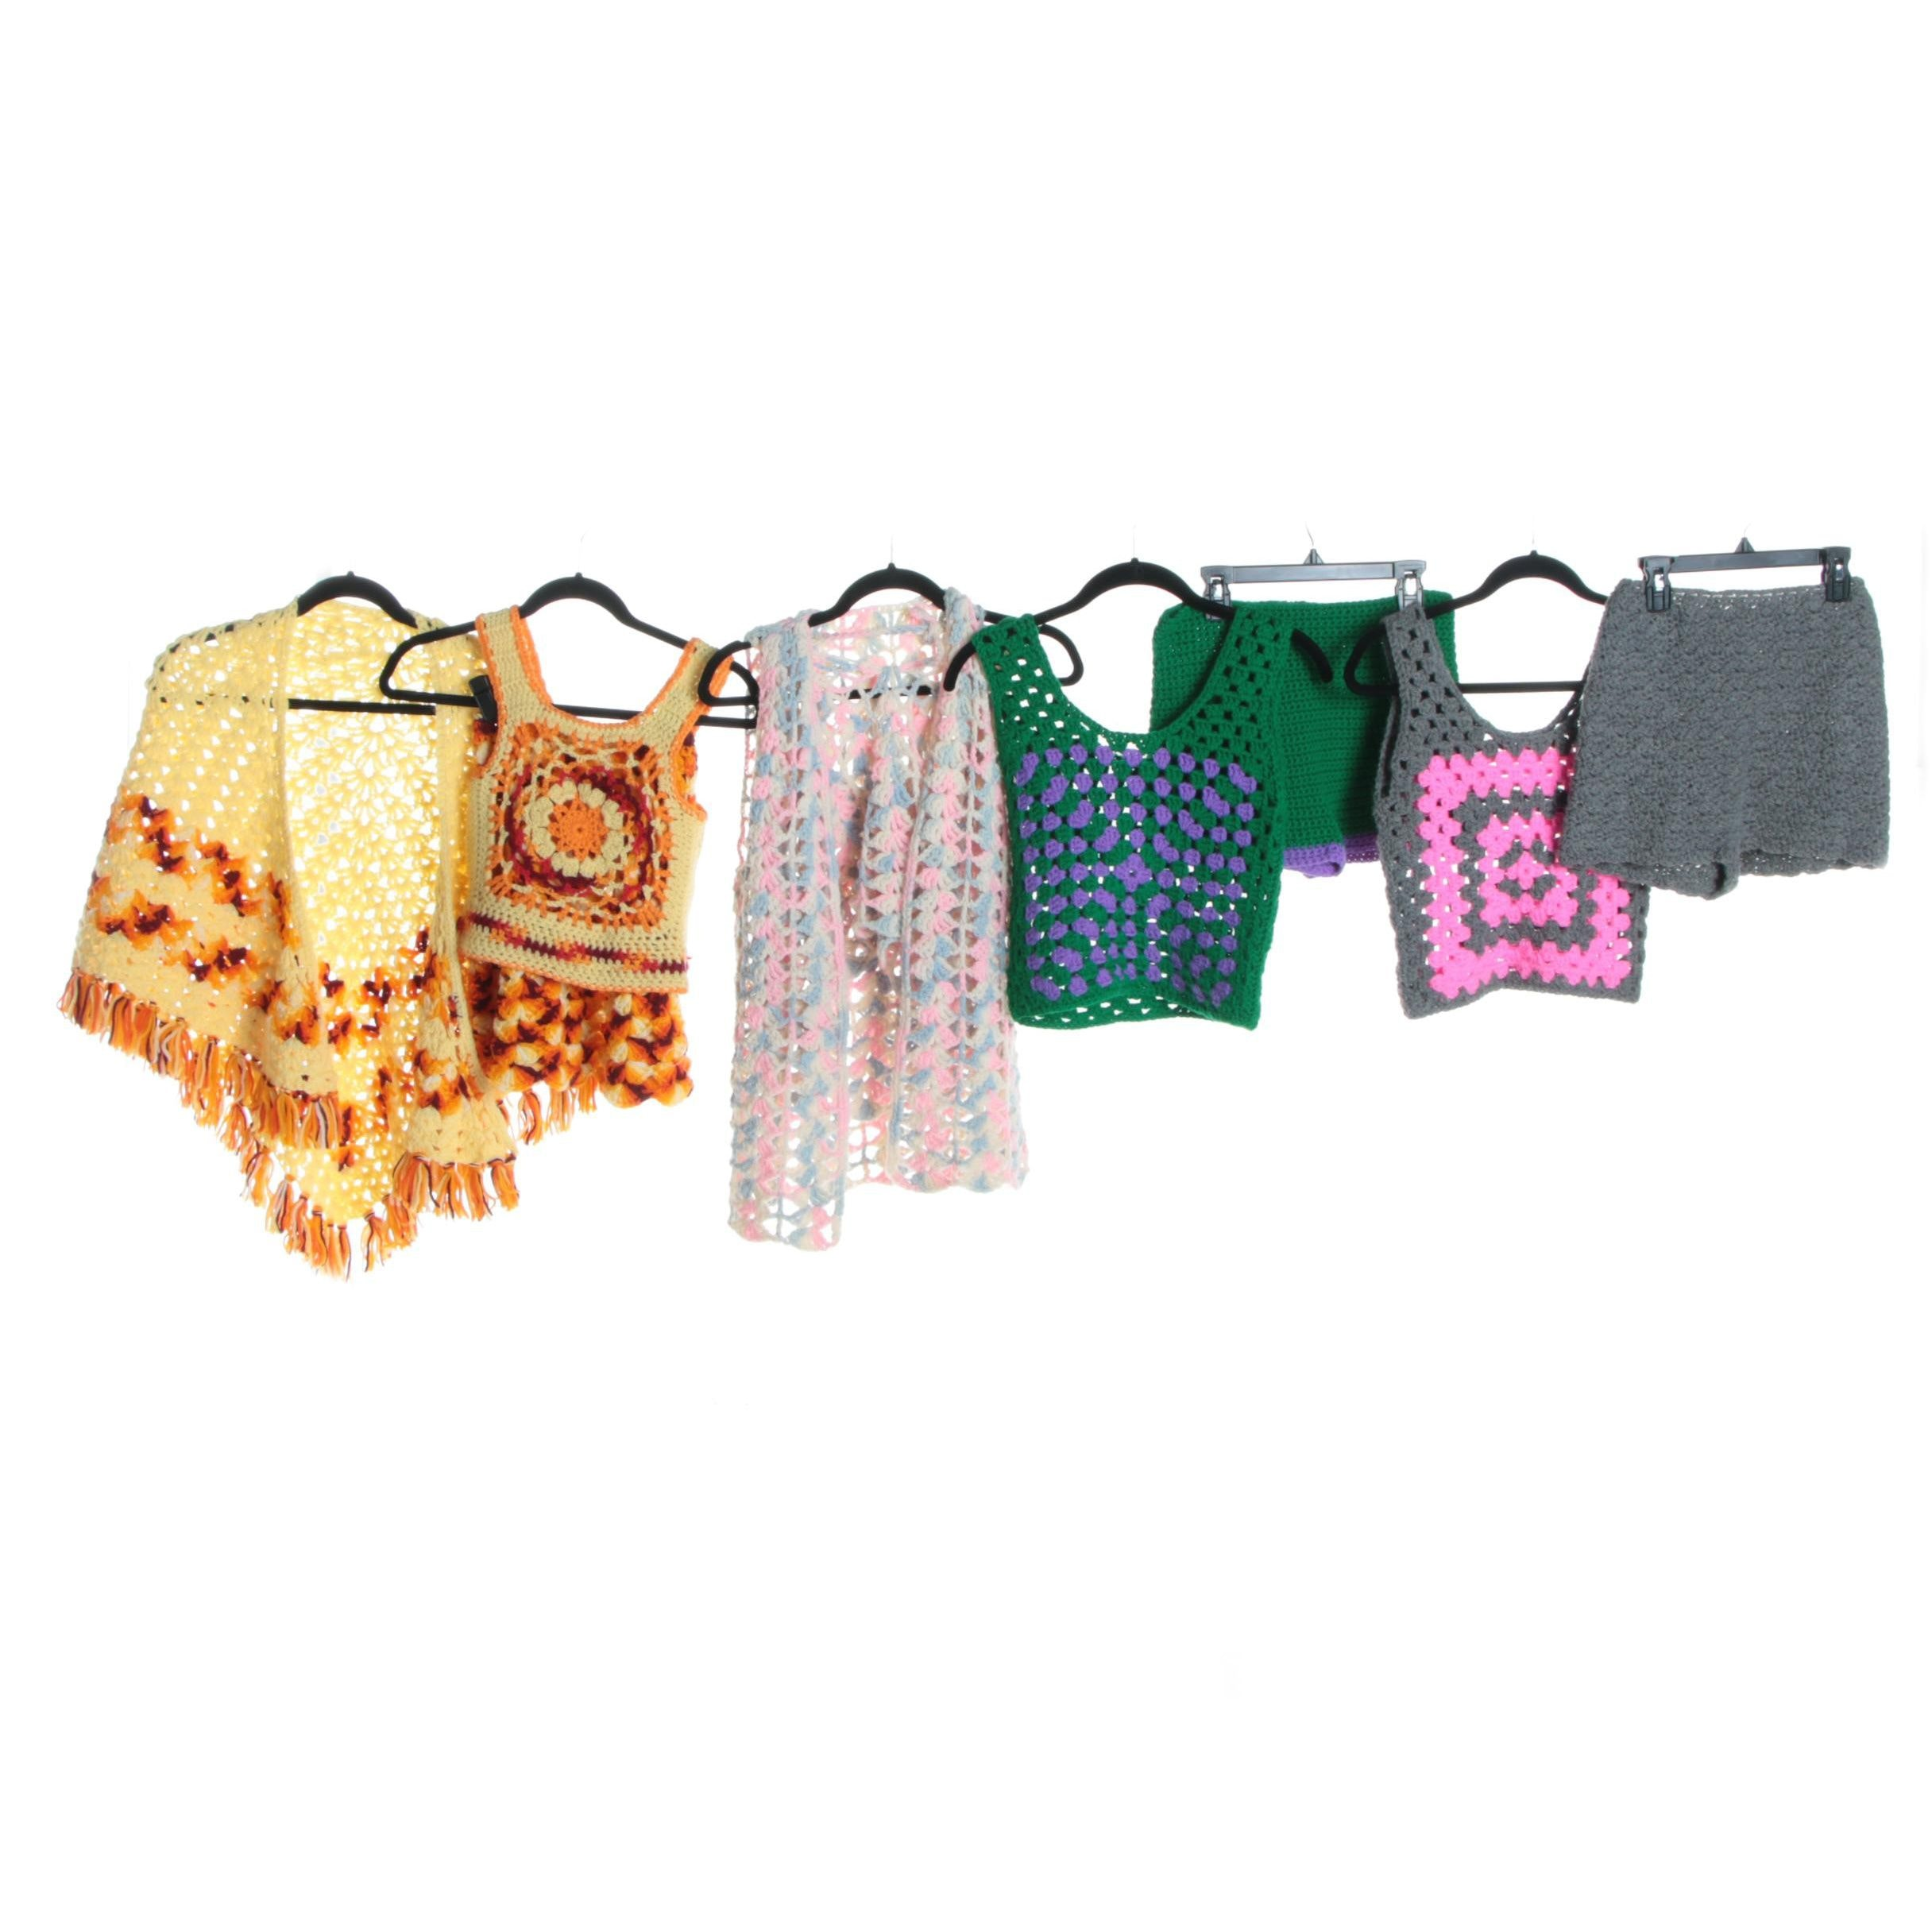 Women's Vintage Hand-Crocheted Clothing Separates